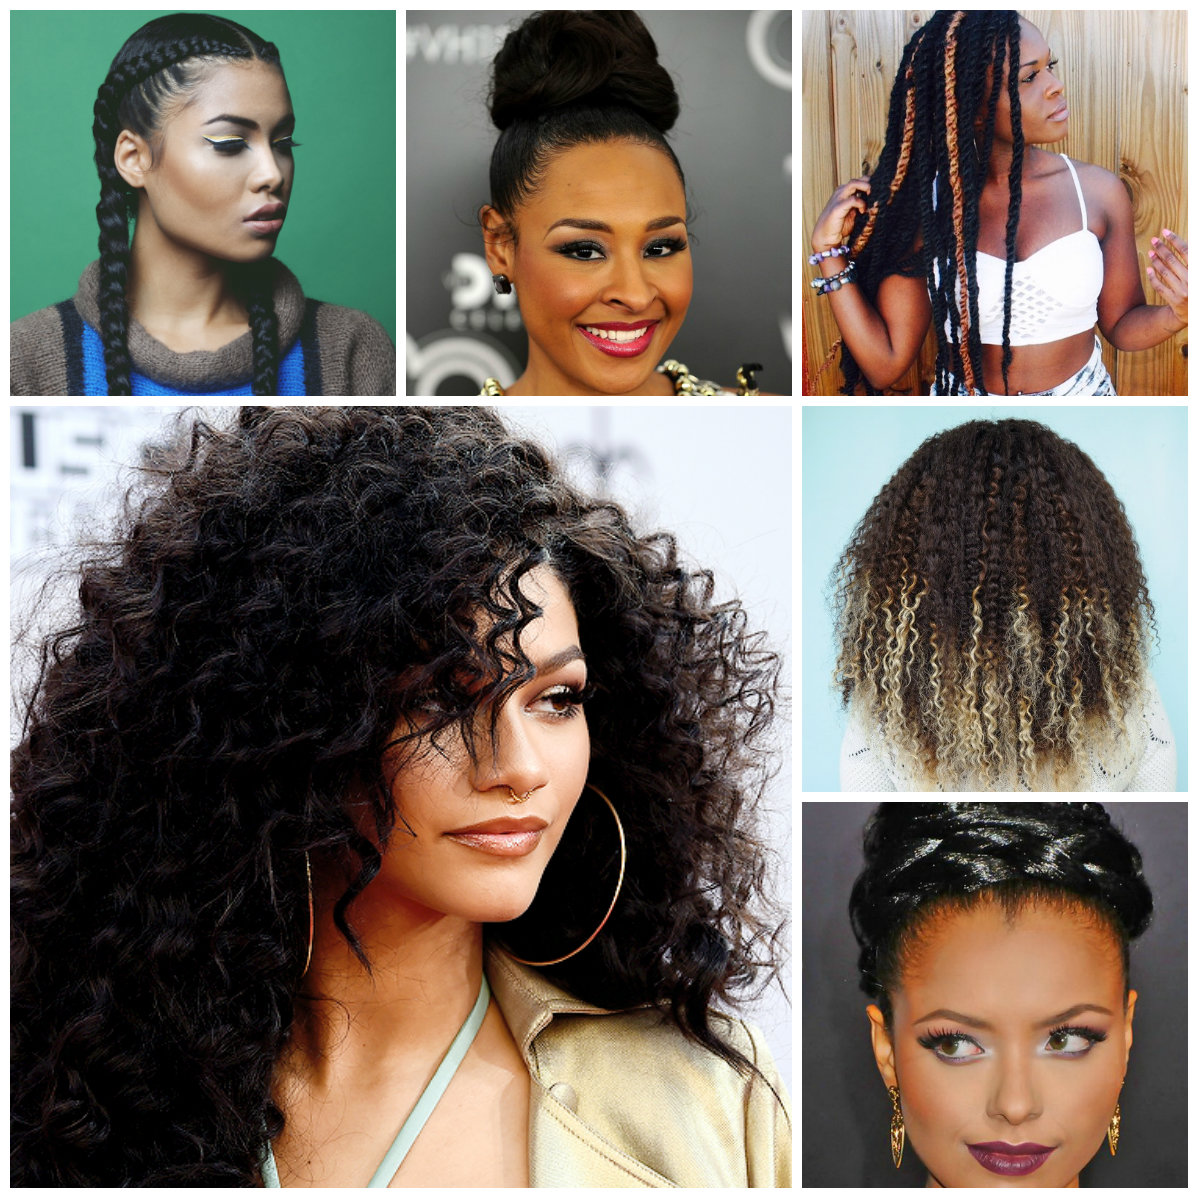 Hairstyles 2016 dark hair -  Natural Hairstyles 2016